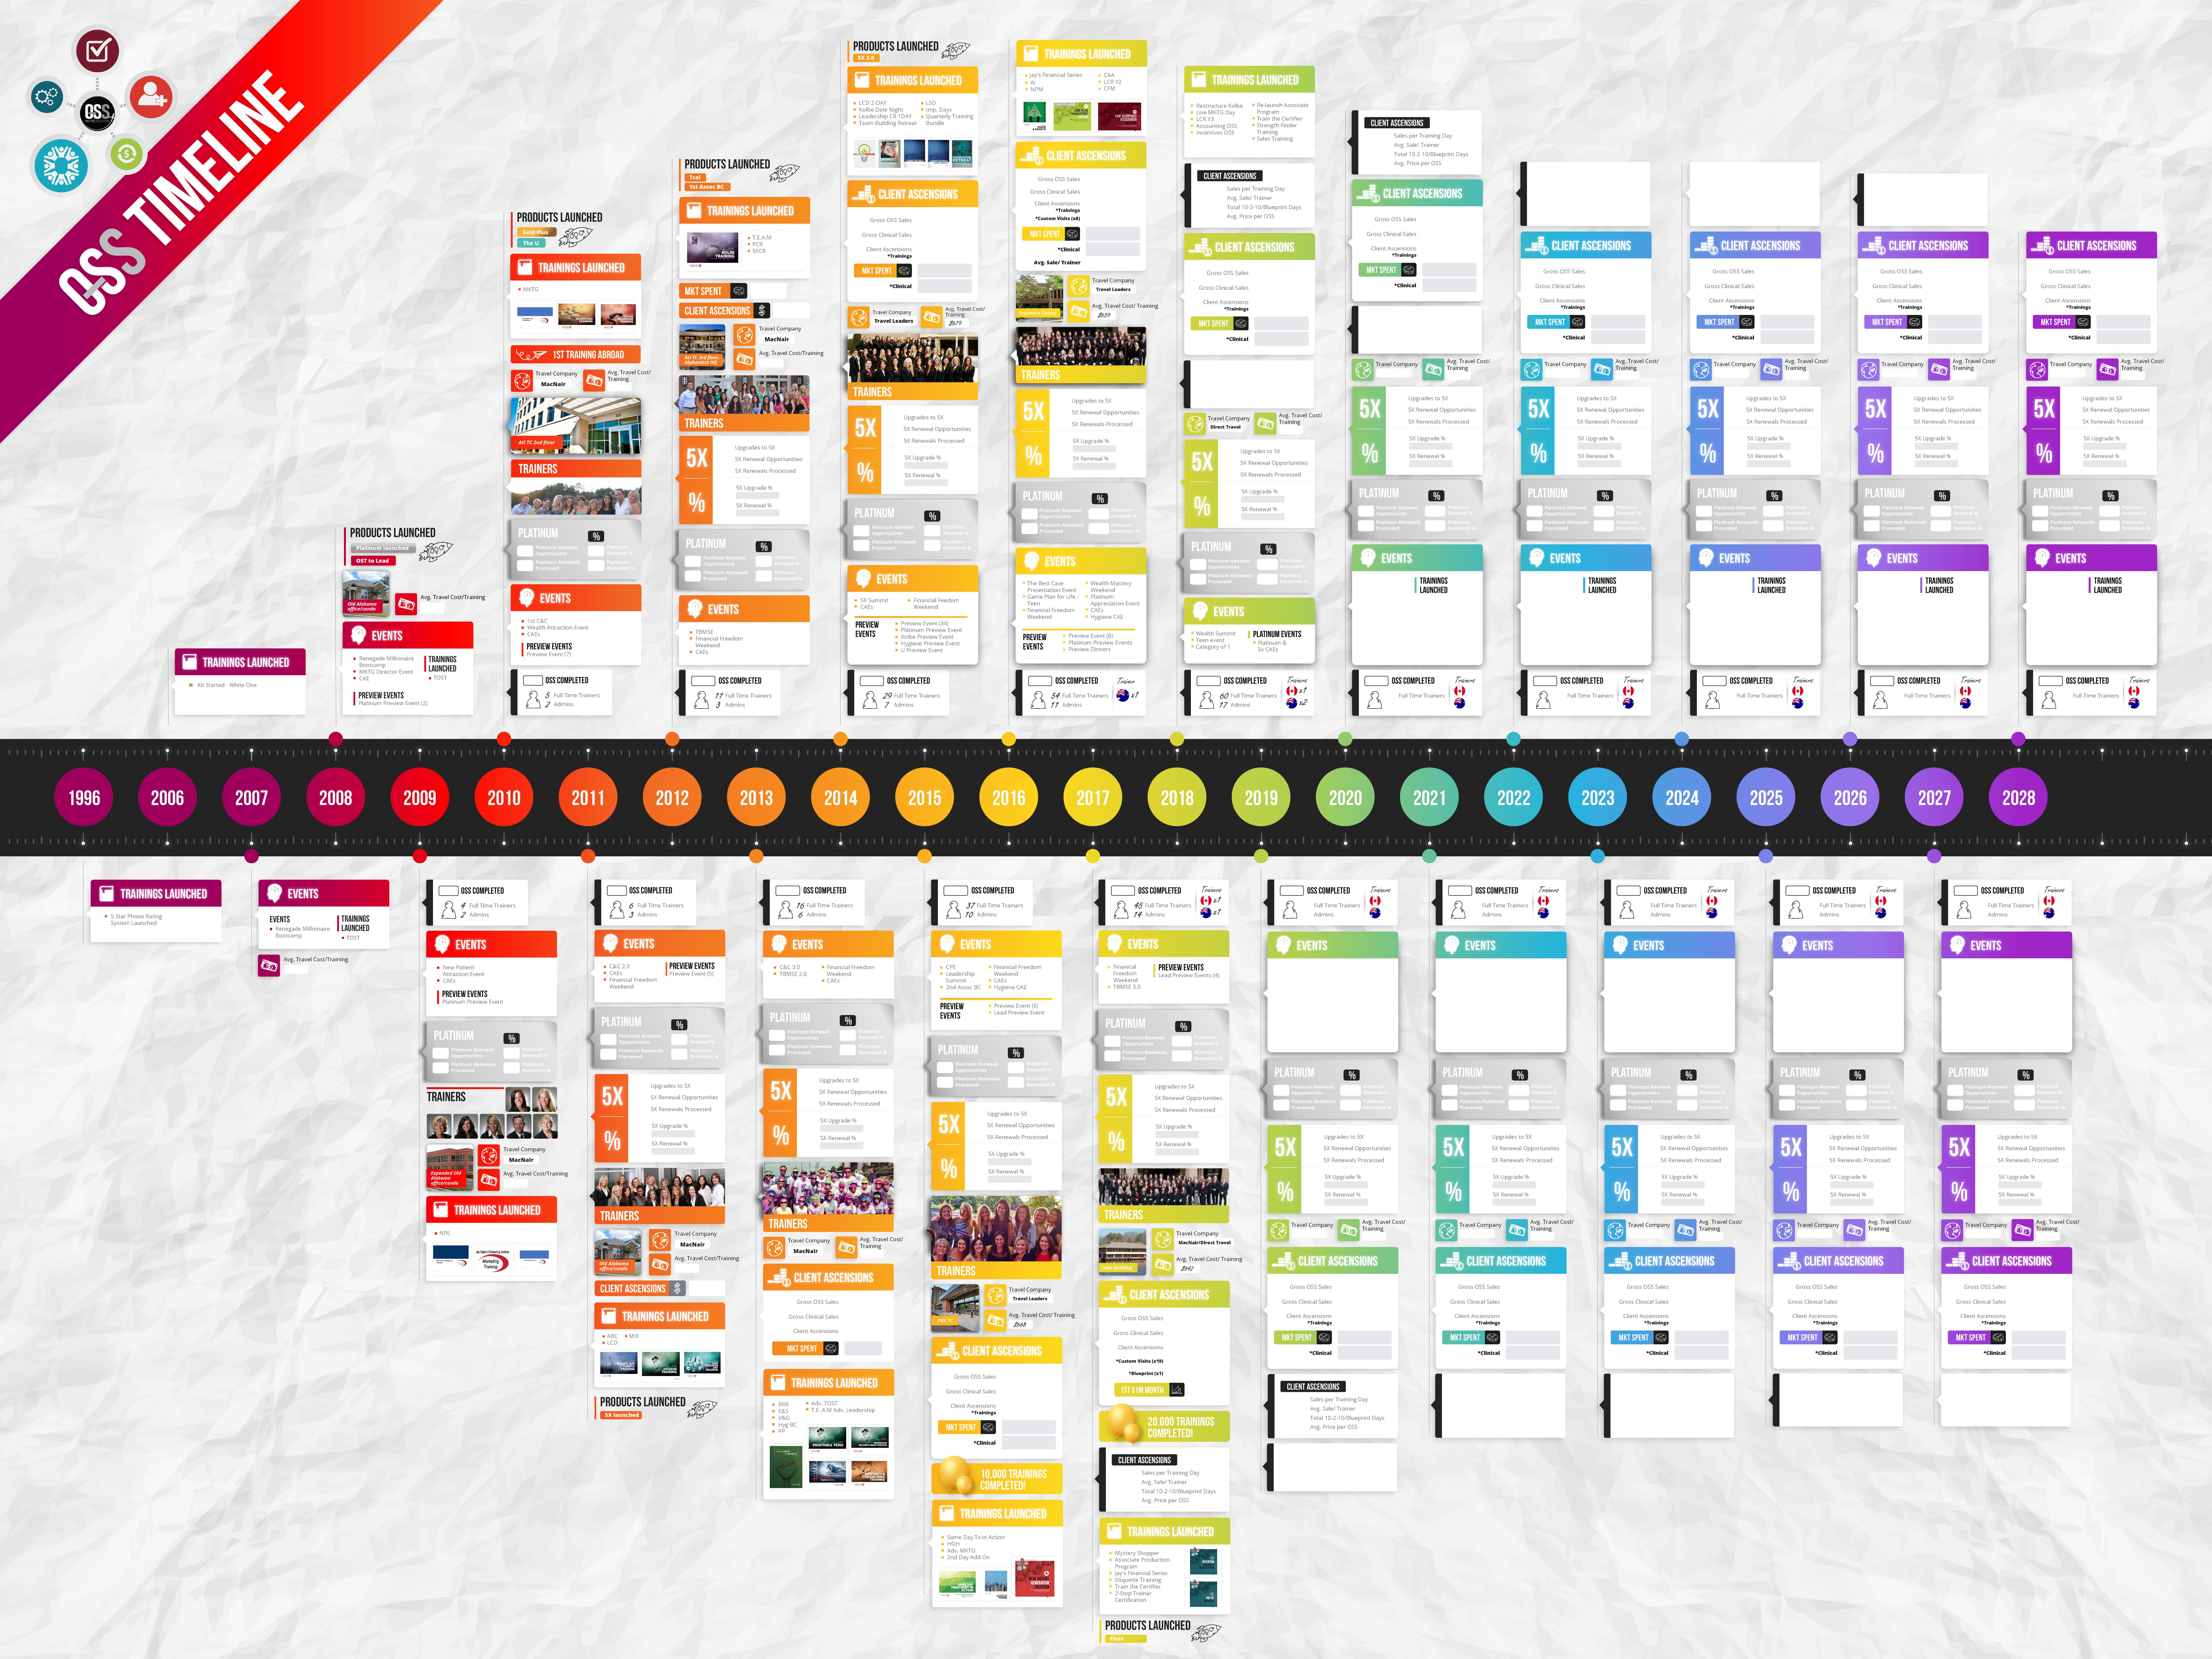 Colorful, tasteful infographic for training department timeline